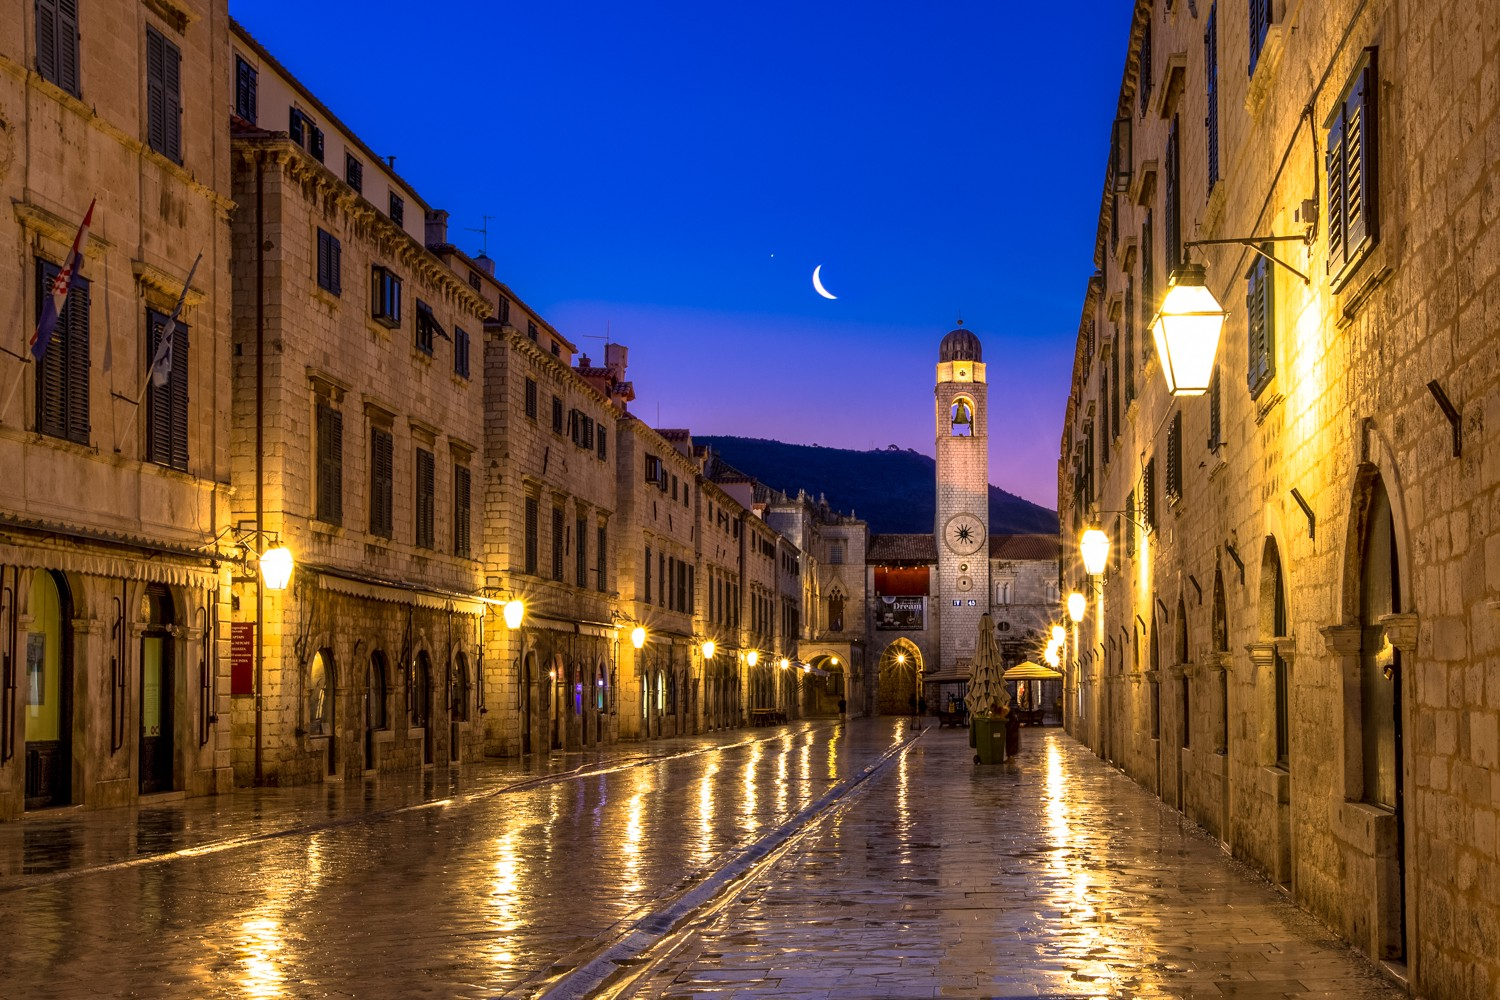 Crescent Moon during an early morning walk in the town of Dubrovnik